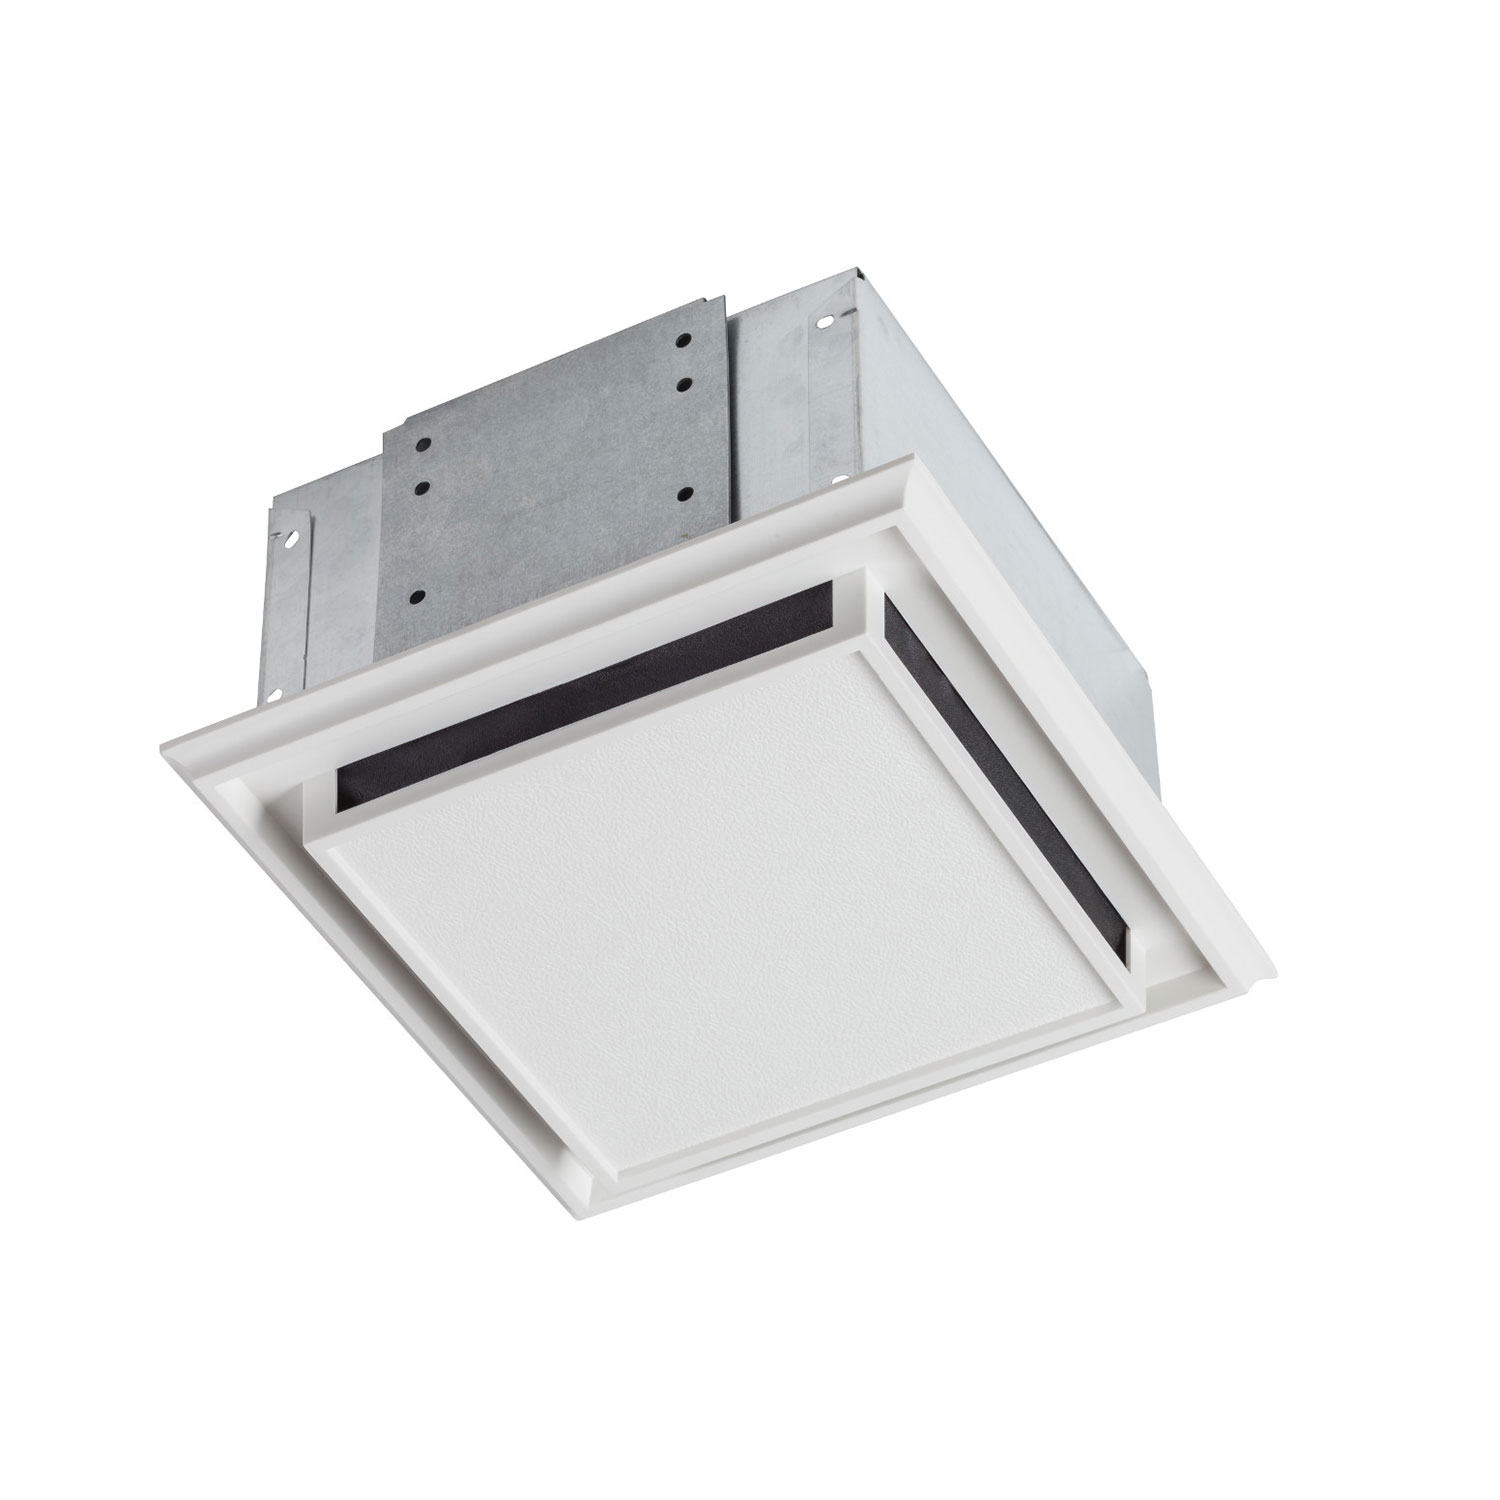 Broan 682 Bathroom Ventilation Fan with Charcoal Filter and White Plastic-Grille